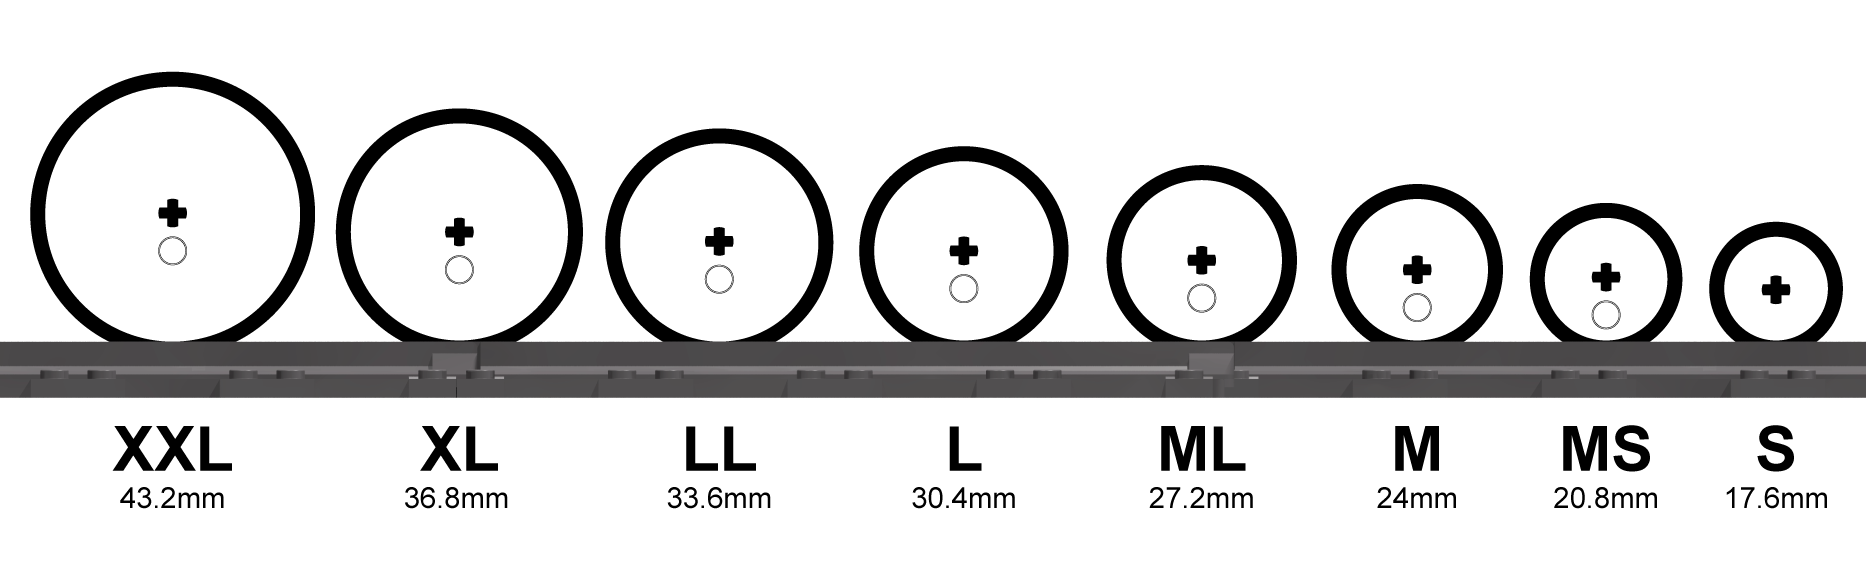 Wheel Sizes.png